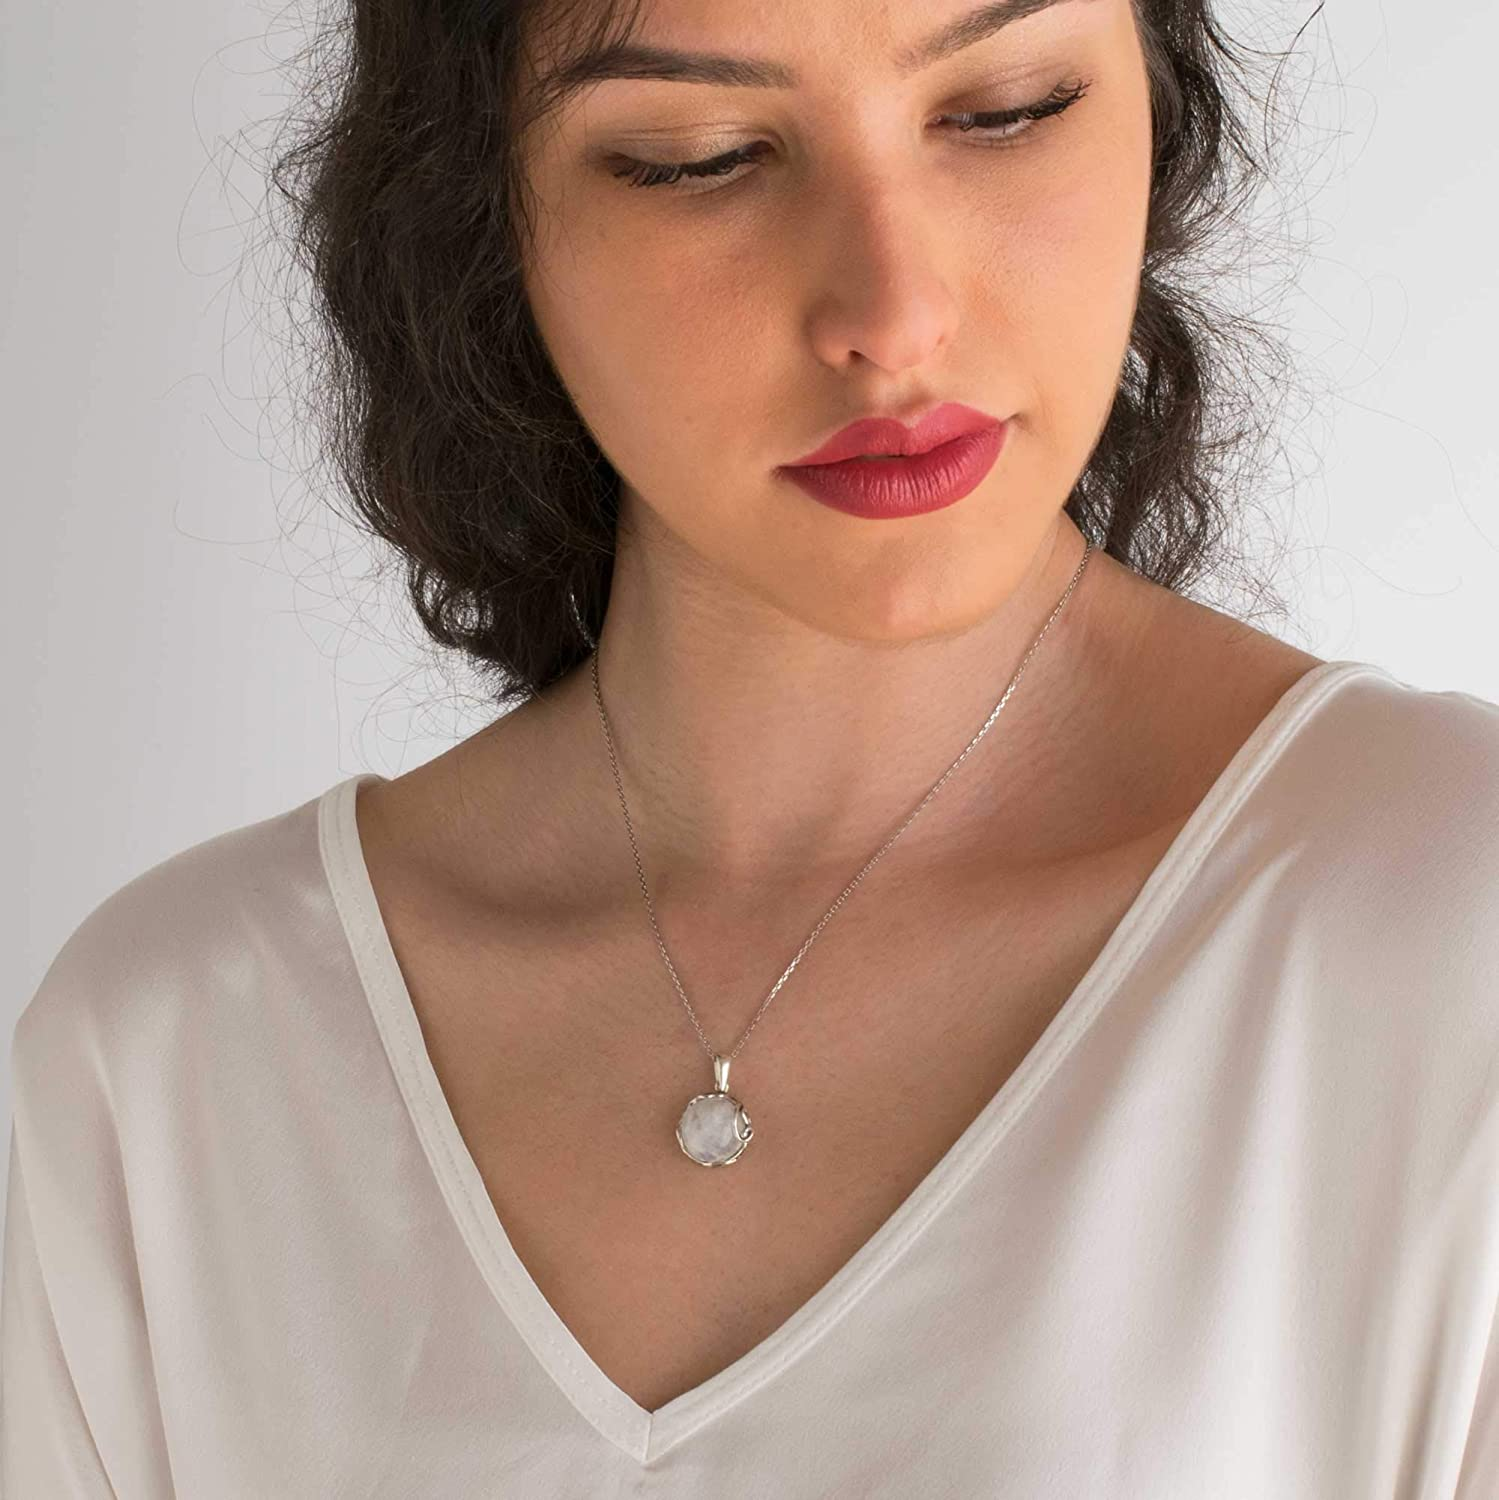 June Gemini Birthstone Birthday Present Unique Handmade Artisan Jewelry 14mm White Iridescent Round Gemstone Pendant Vintage Style Gift for Women 925 Sterling Silver Natural Moonstone Necklace